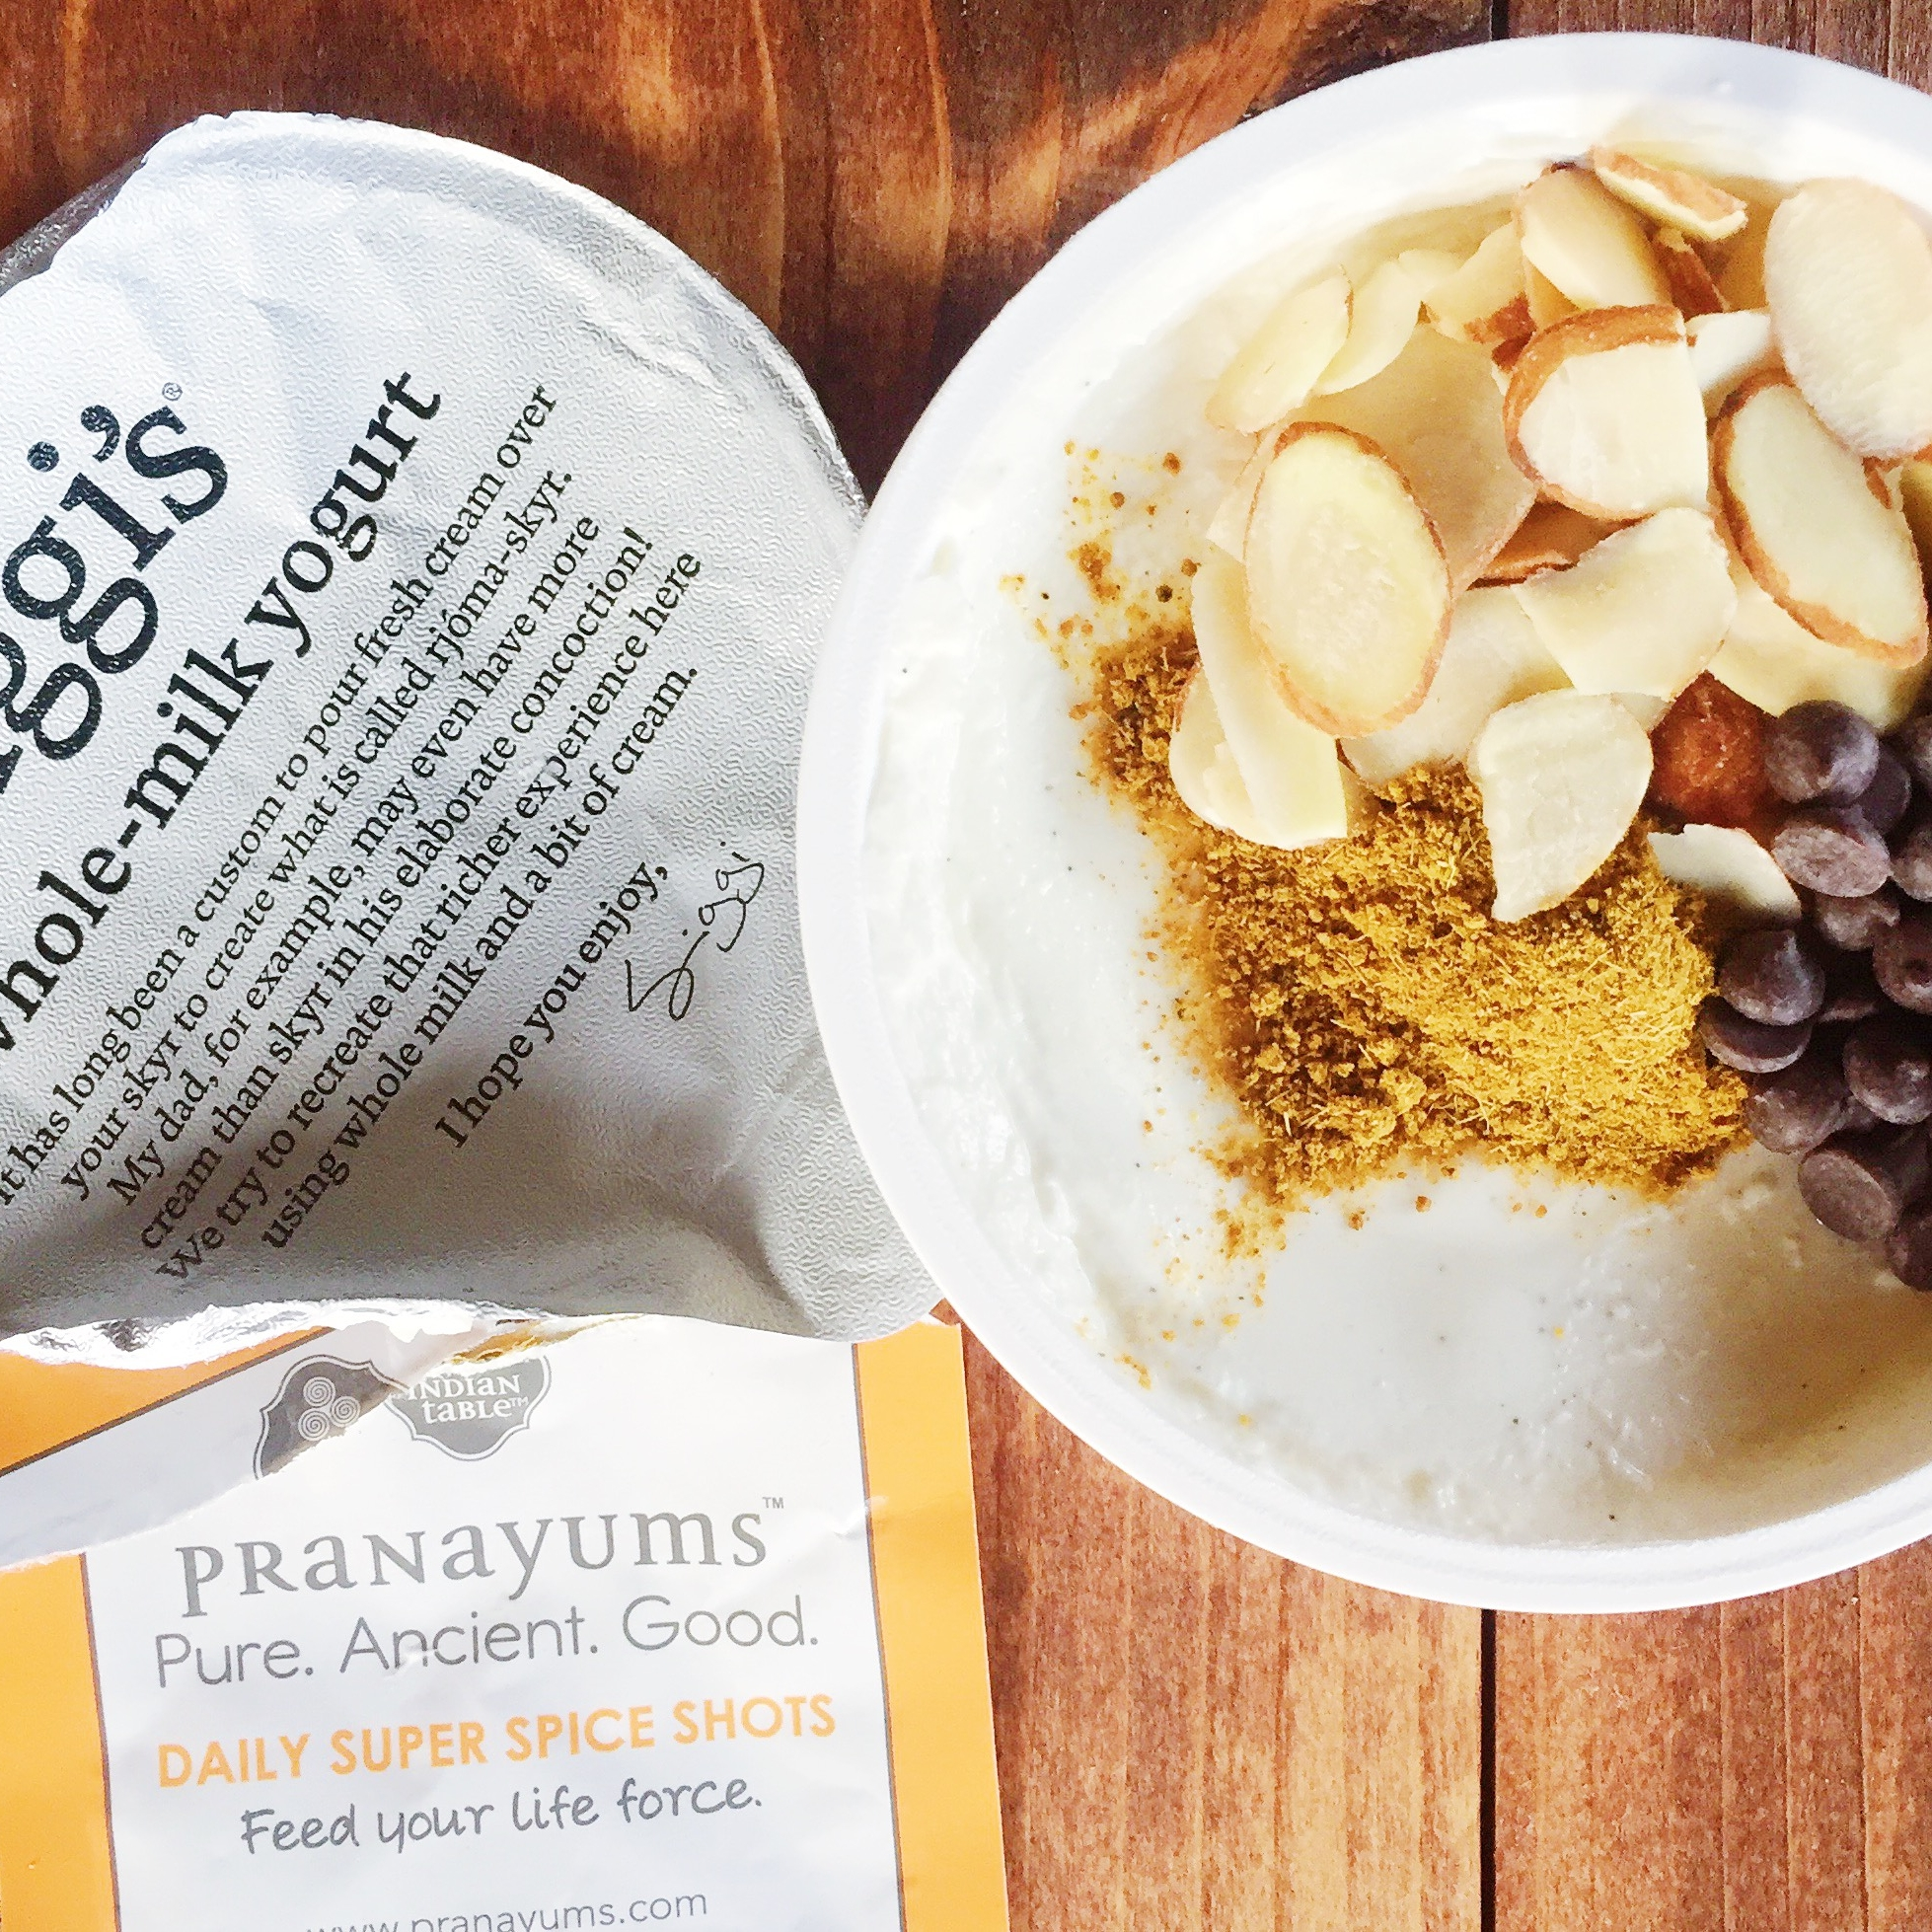 Pranayums goes great with yogurt, nuts, and chocolate chips, for the perfect sweet & spicy parfait.